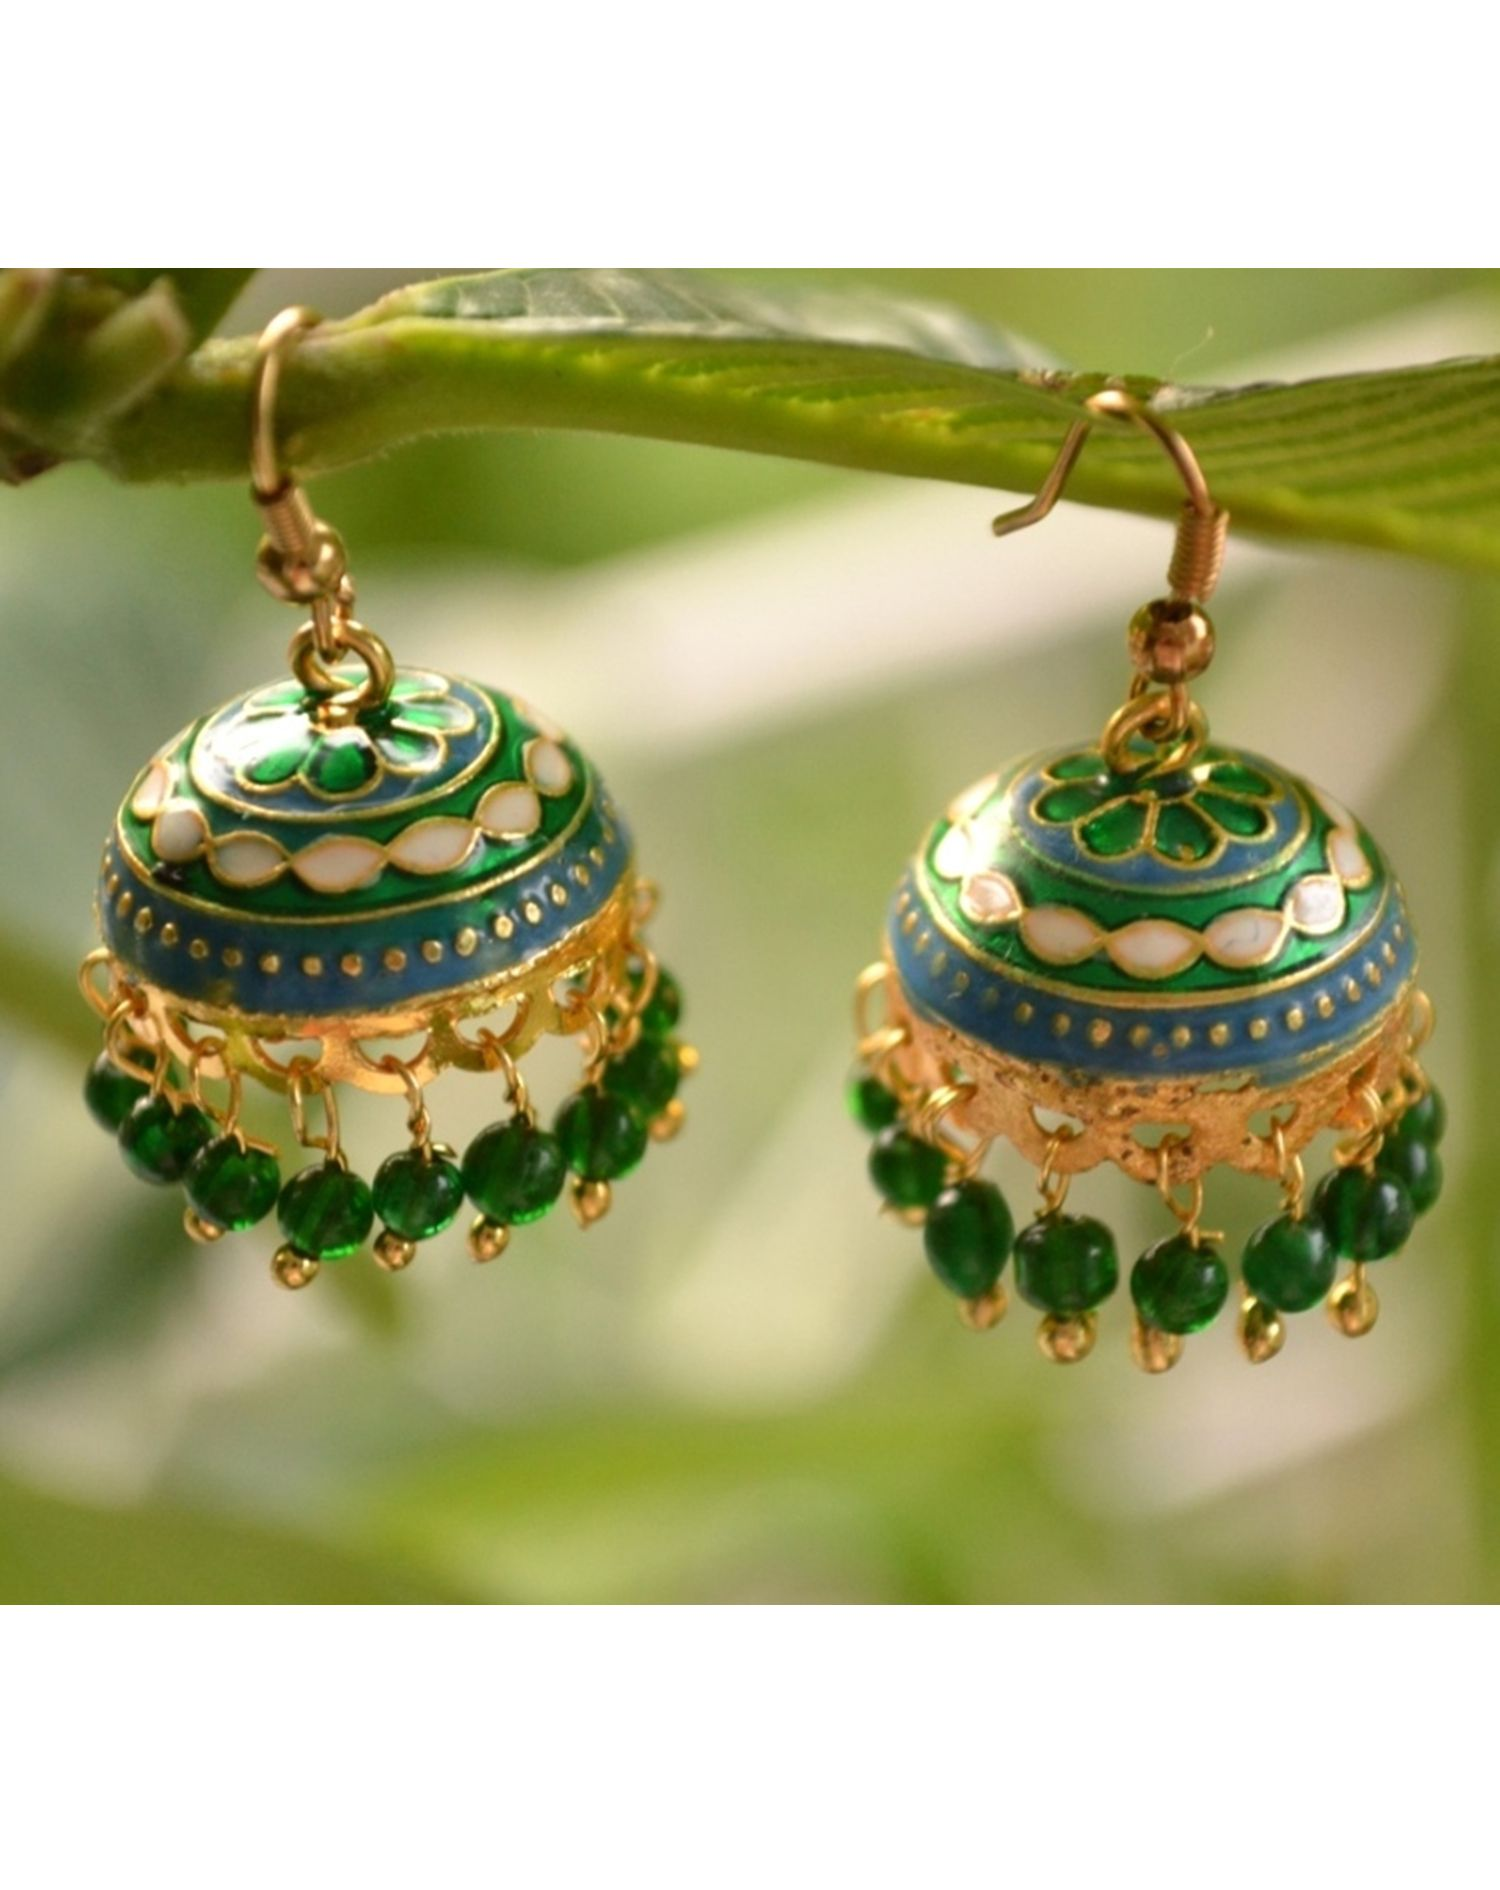 Shree Varam Green Meenakari Jhumka Earrings Online In India At Best Price Splash Some Ethnicity With These Fun Cute That Are Sure To E Up